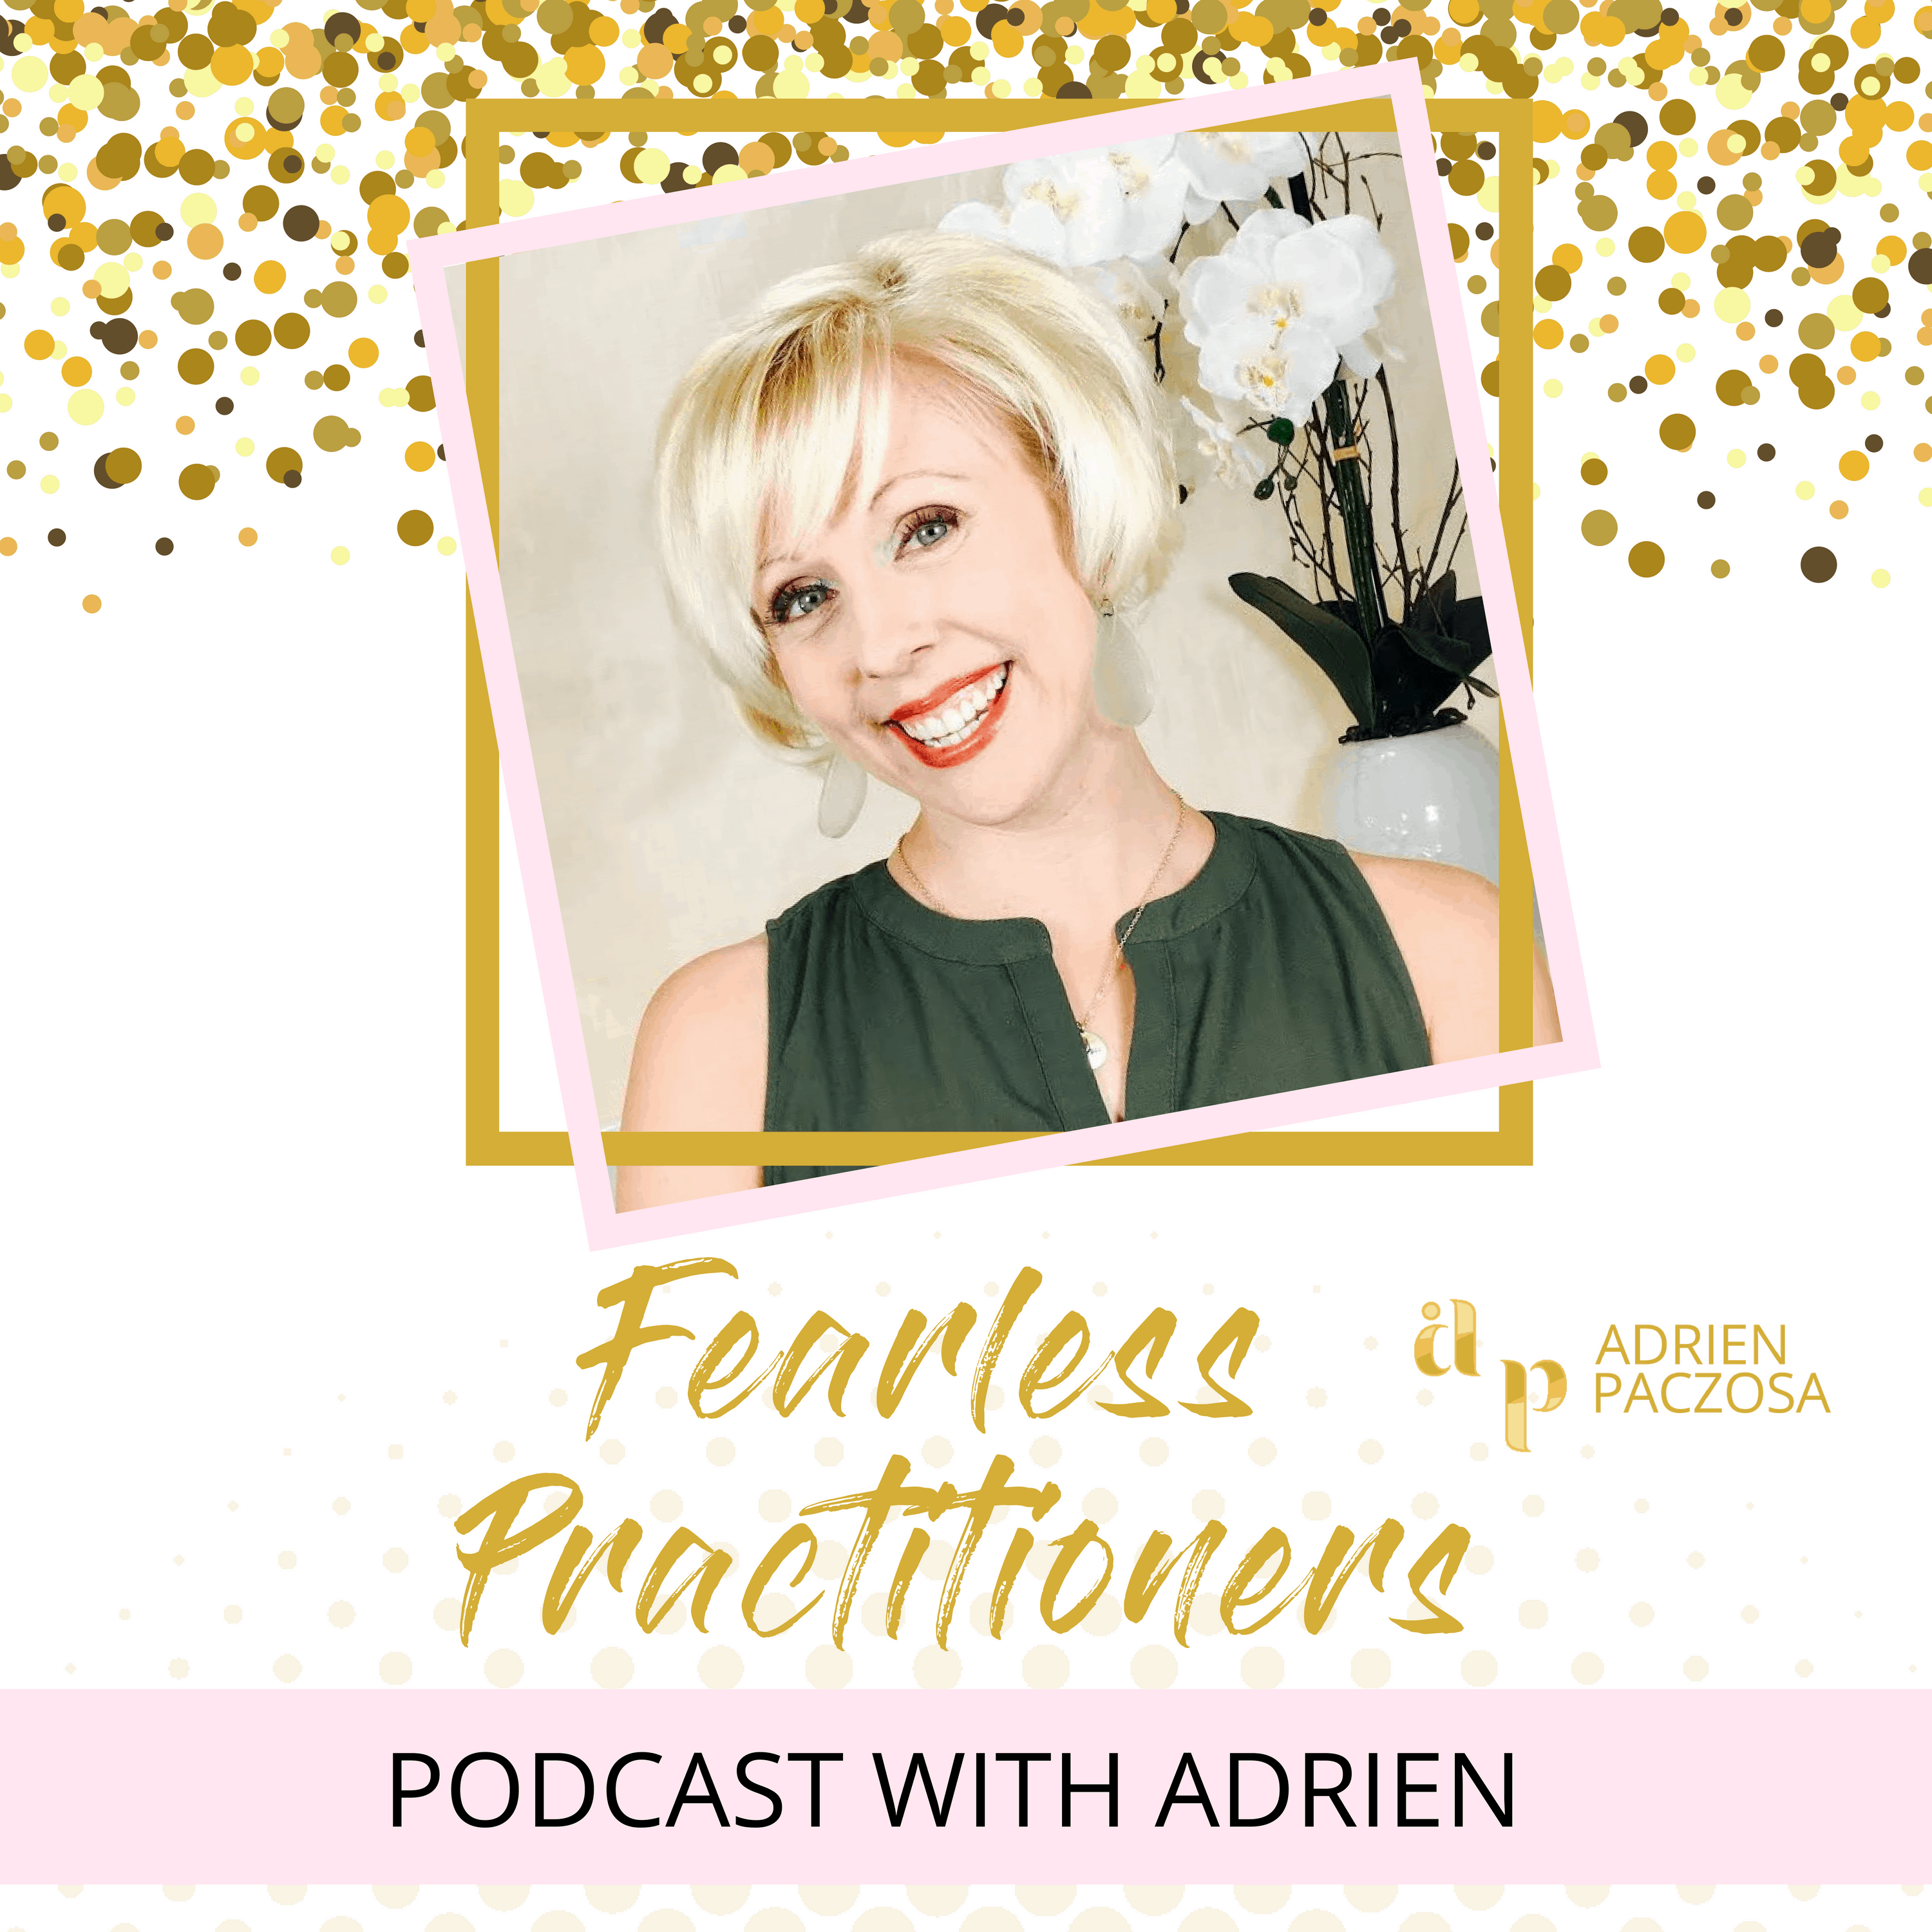 fearless-practitioners-podcastsm